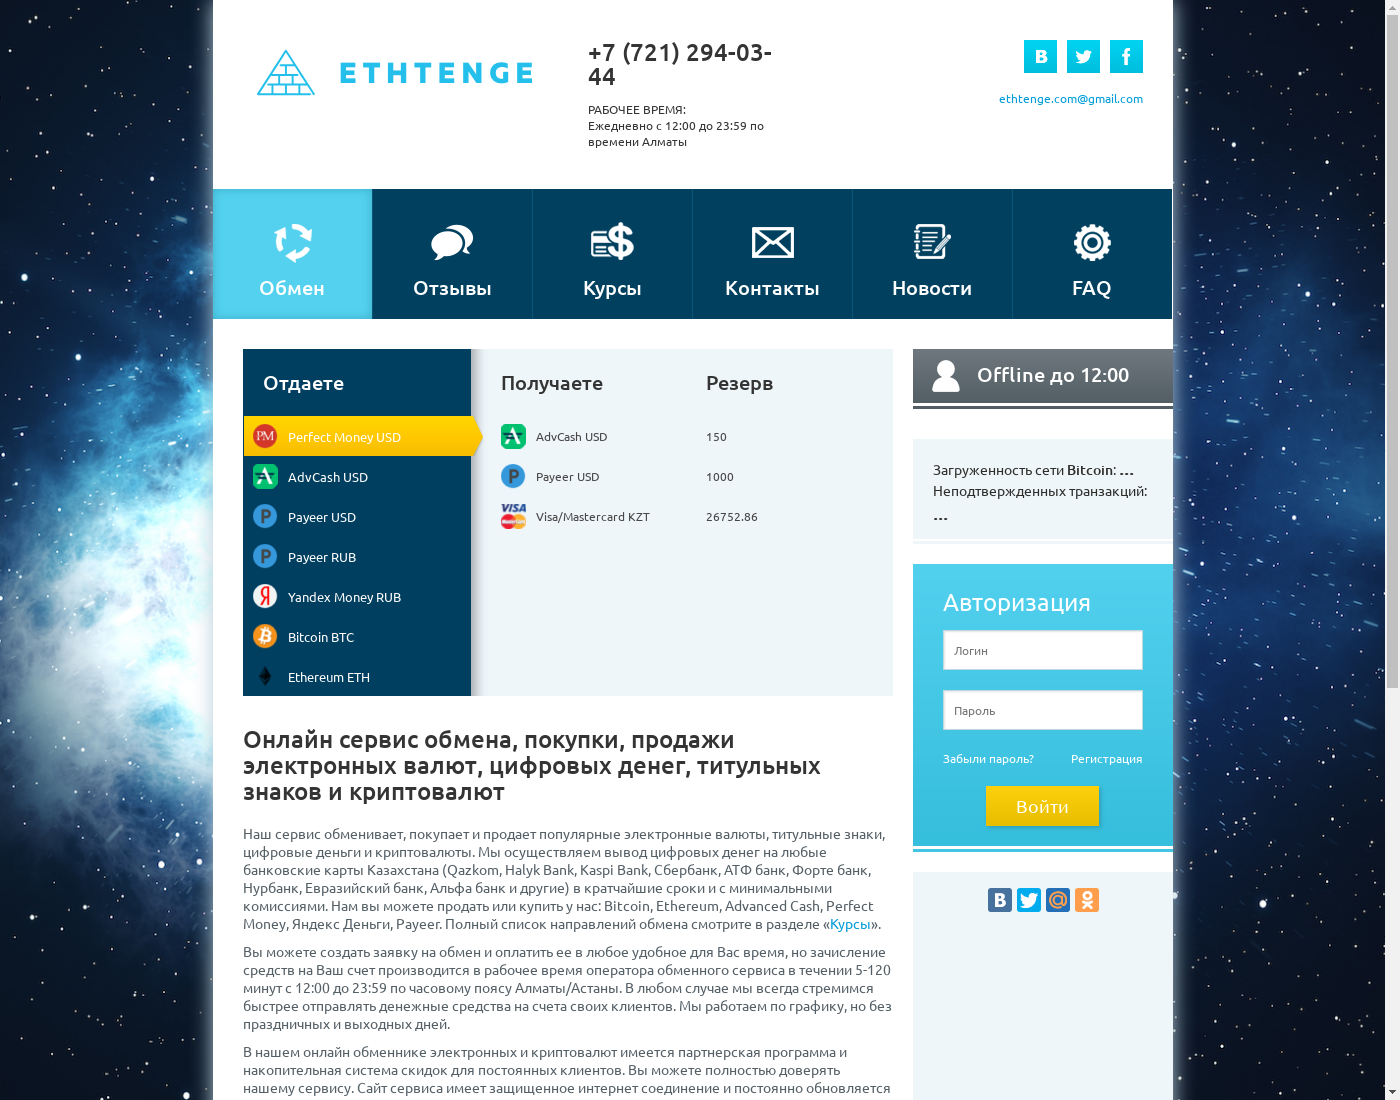 ETHtenge user interface: the home page in English